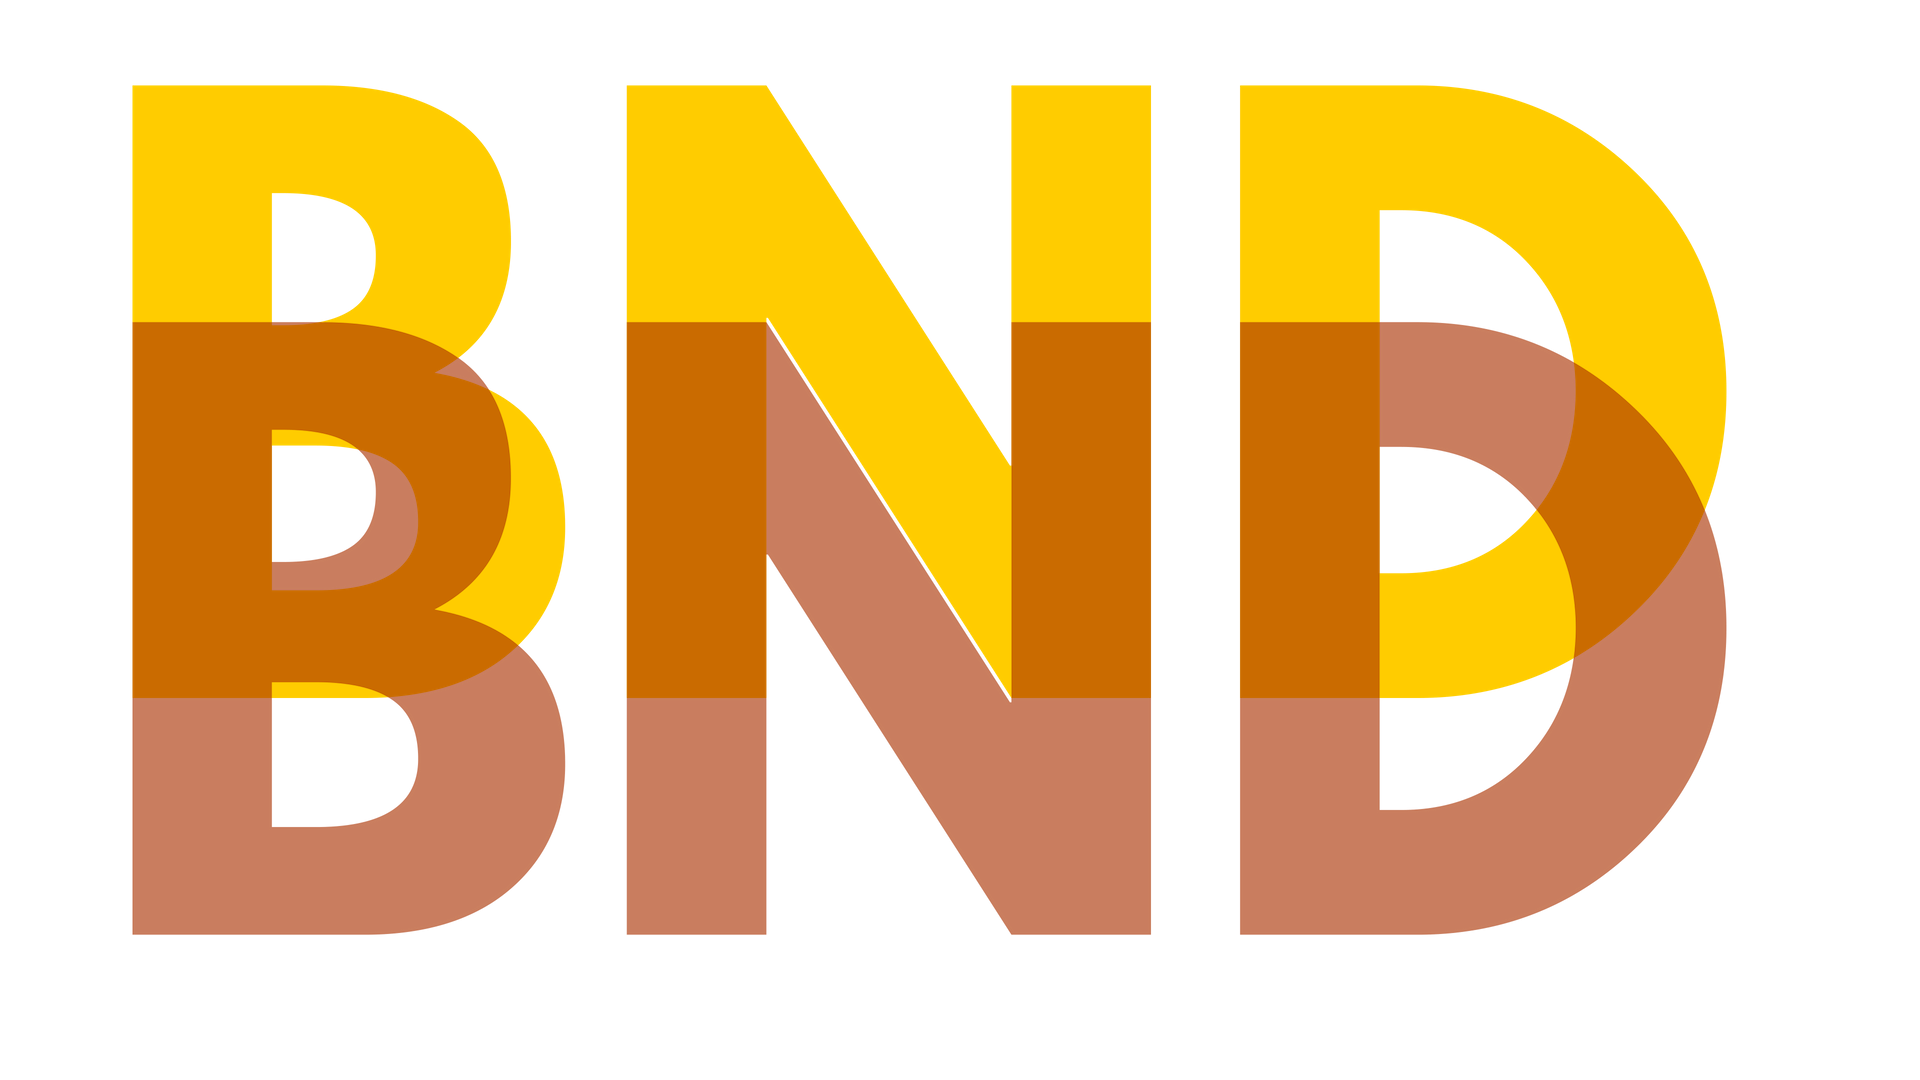 Ireland's First Spoken Word Magazine - BND (bound) is a magazine and blog dedicated to exploring the vibrant spoken world community in Ireland.